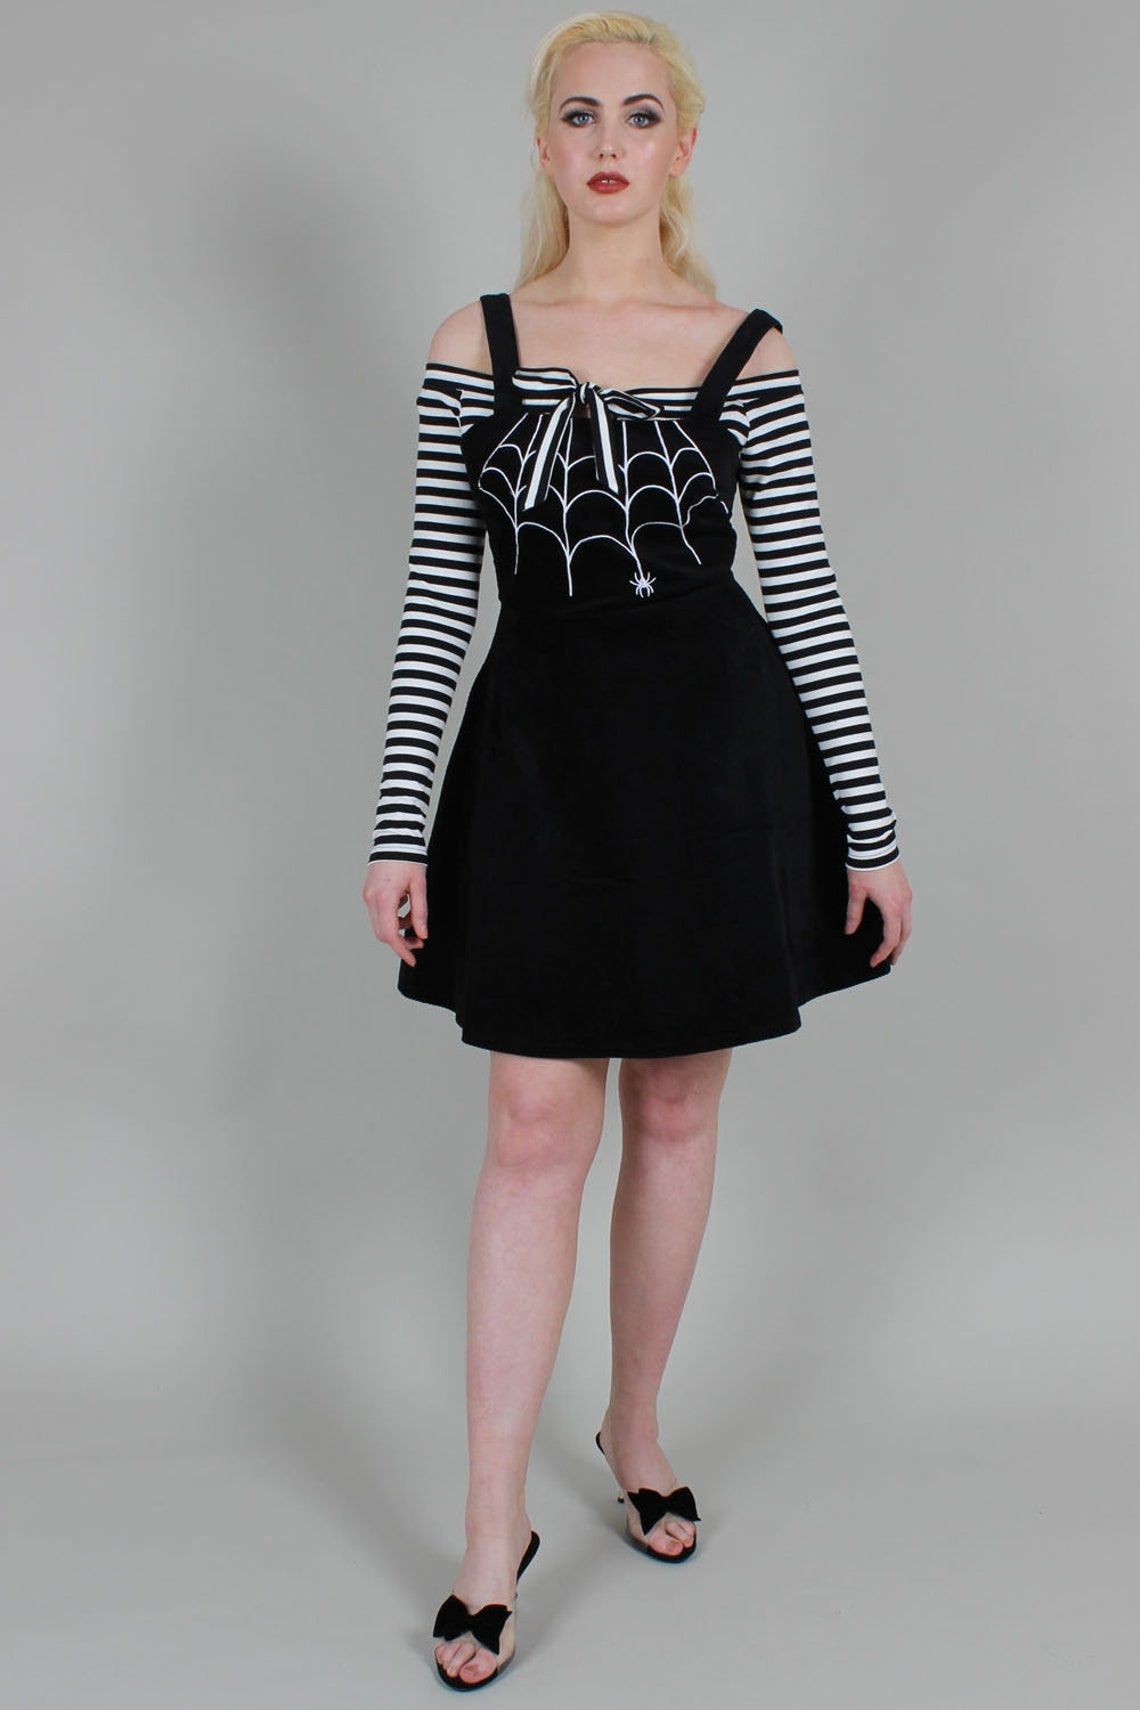 Gothic Spider Web Skater Overall Corduroy Dress Black White